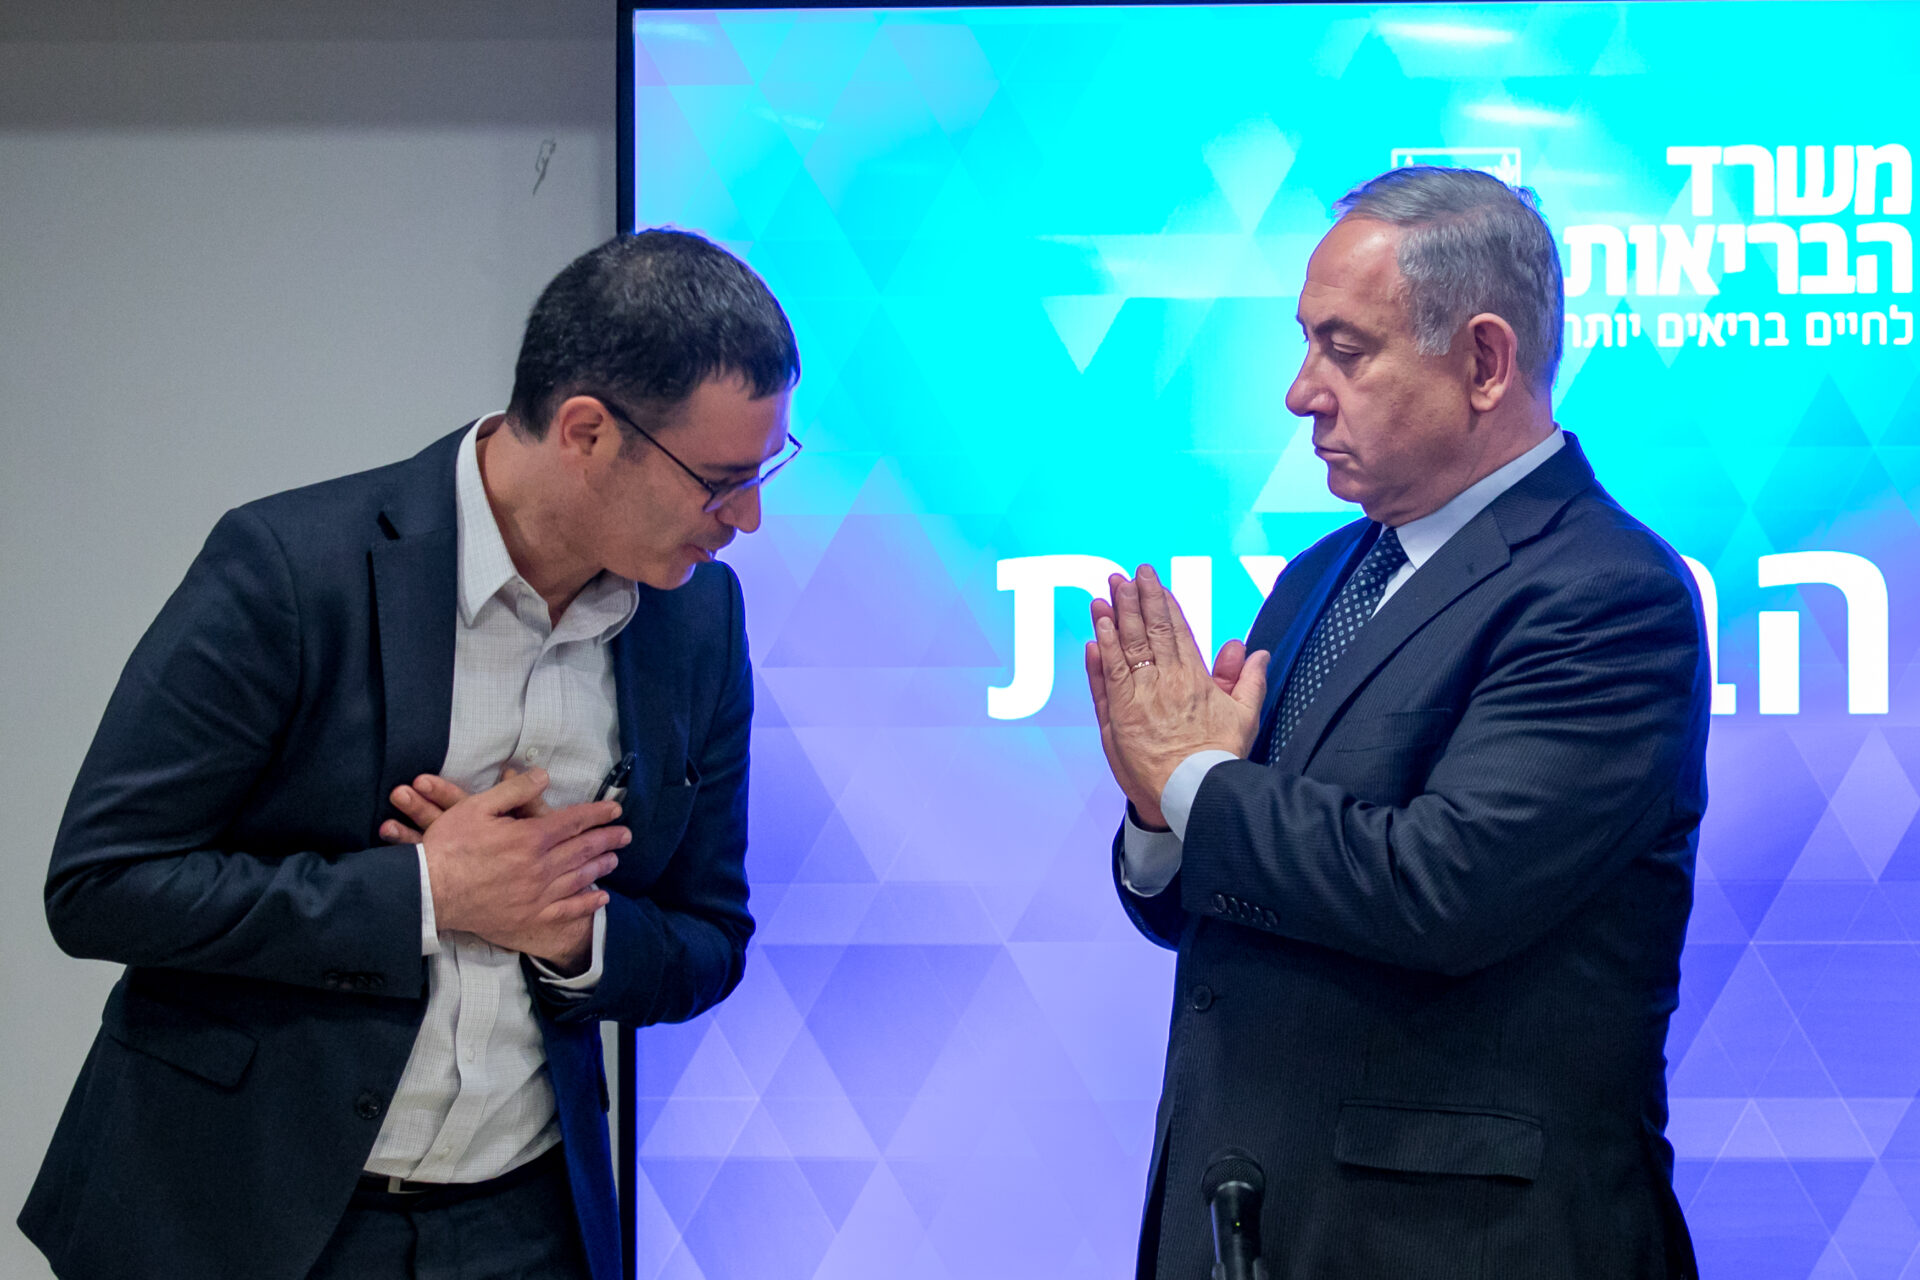 Israeli Prime Minister Benjamin Netanyahu, right, and Director General of the Ministry of Health Moshe Bar Siman Tov demonstrate how to greet one another without shaking hands due to coronavirus concerns, March 4, 2020. Photo by Olivier Fitoussi/Flash90